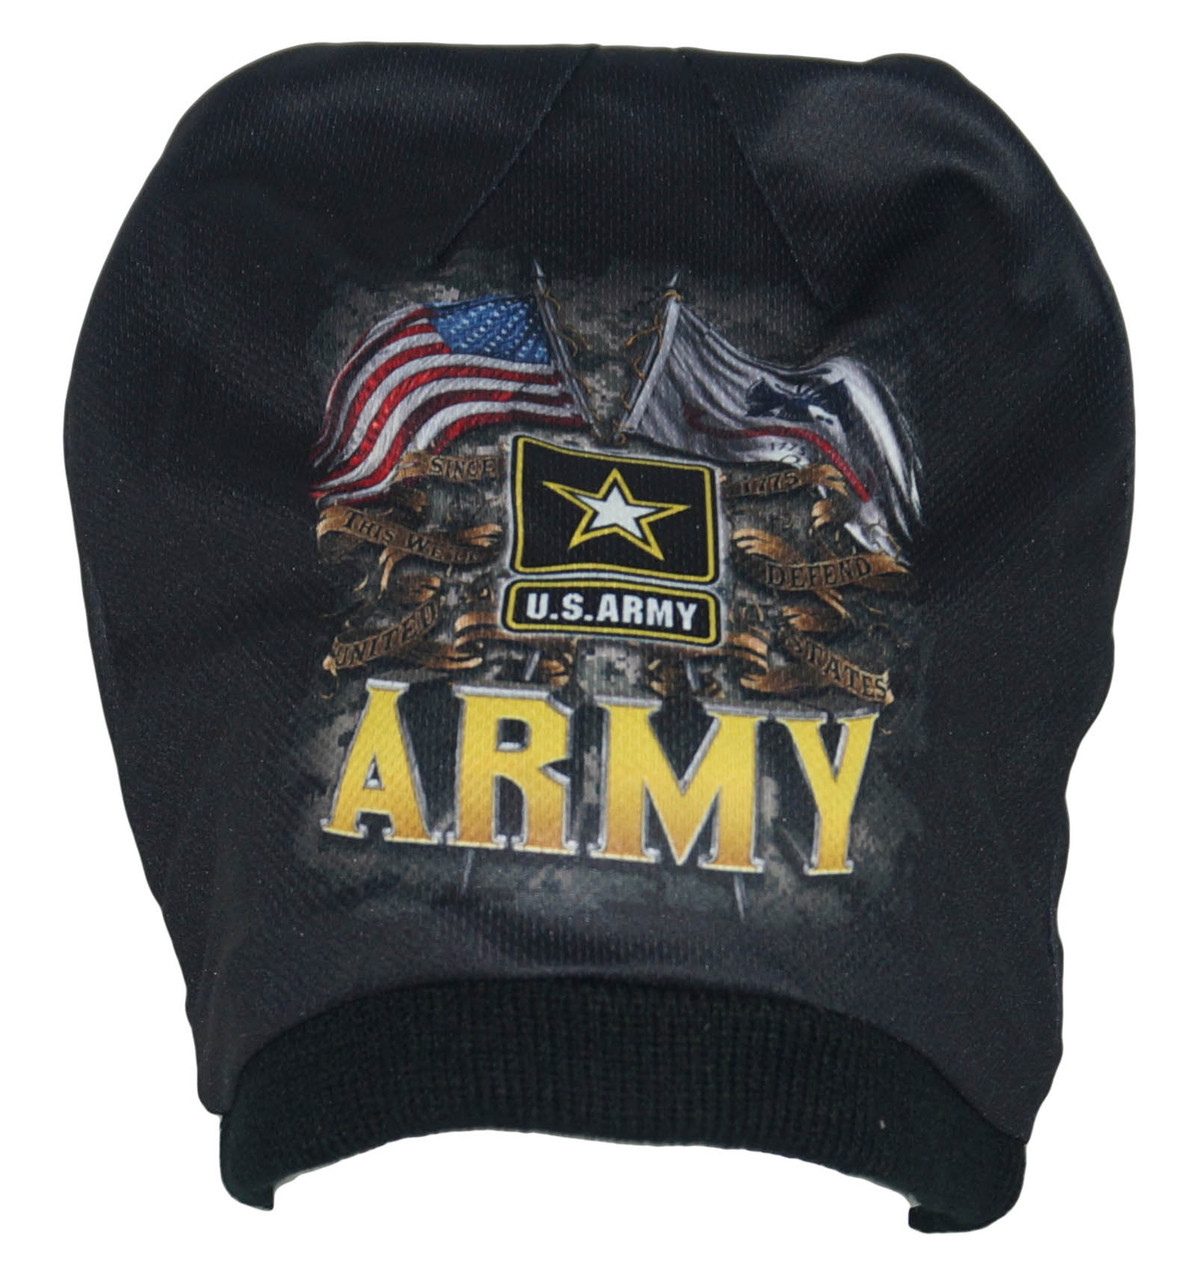 http://d3d71ba2asa5oz.cloudfront.net/12013655/images/amm-mm2151-er6%20army%20double%20flags%20beanie%20%20(3).jpg